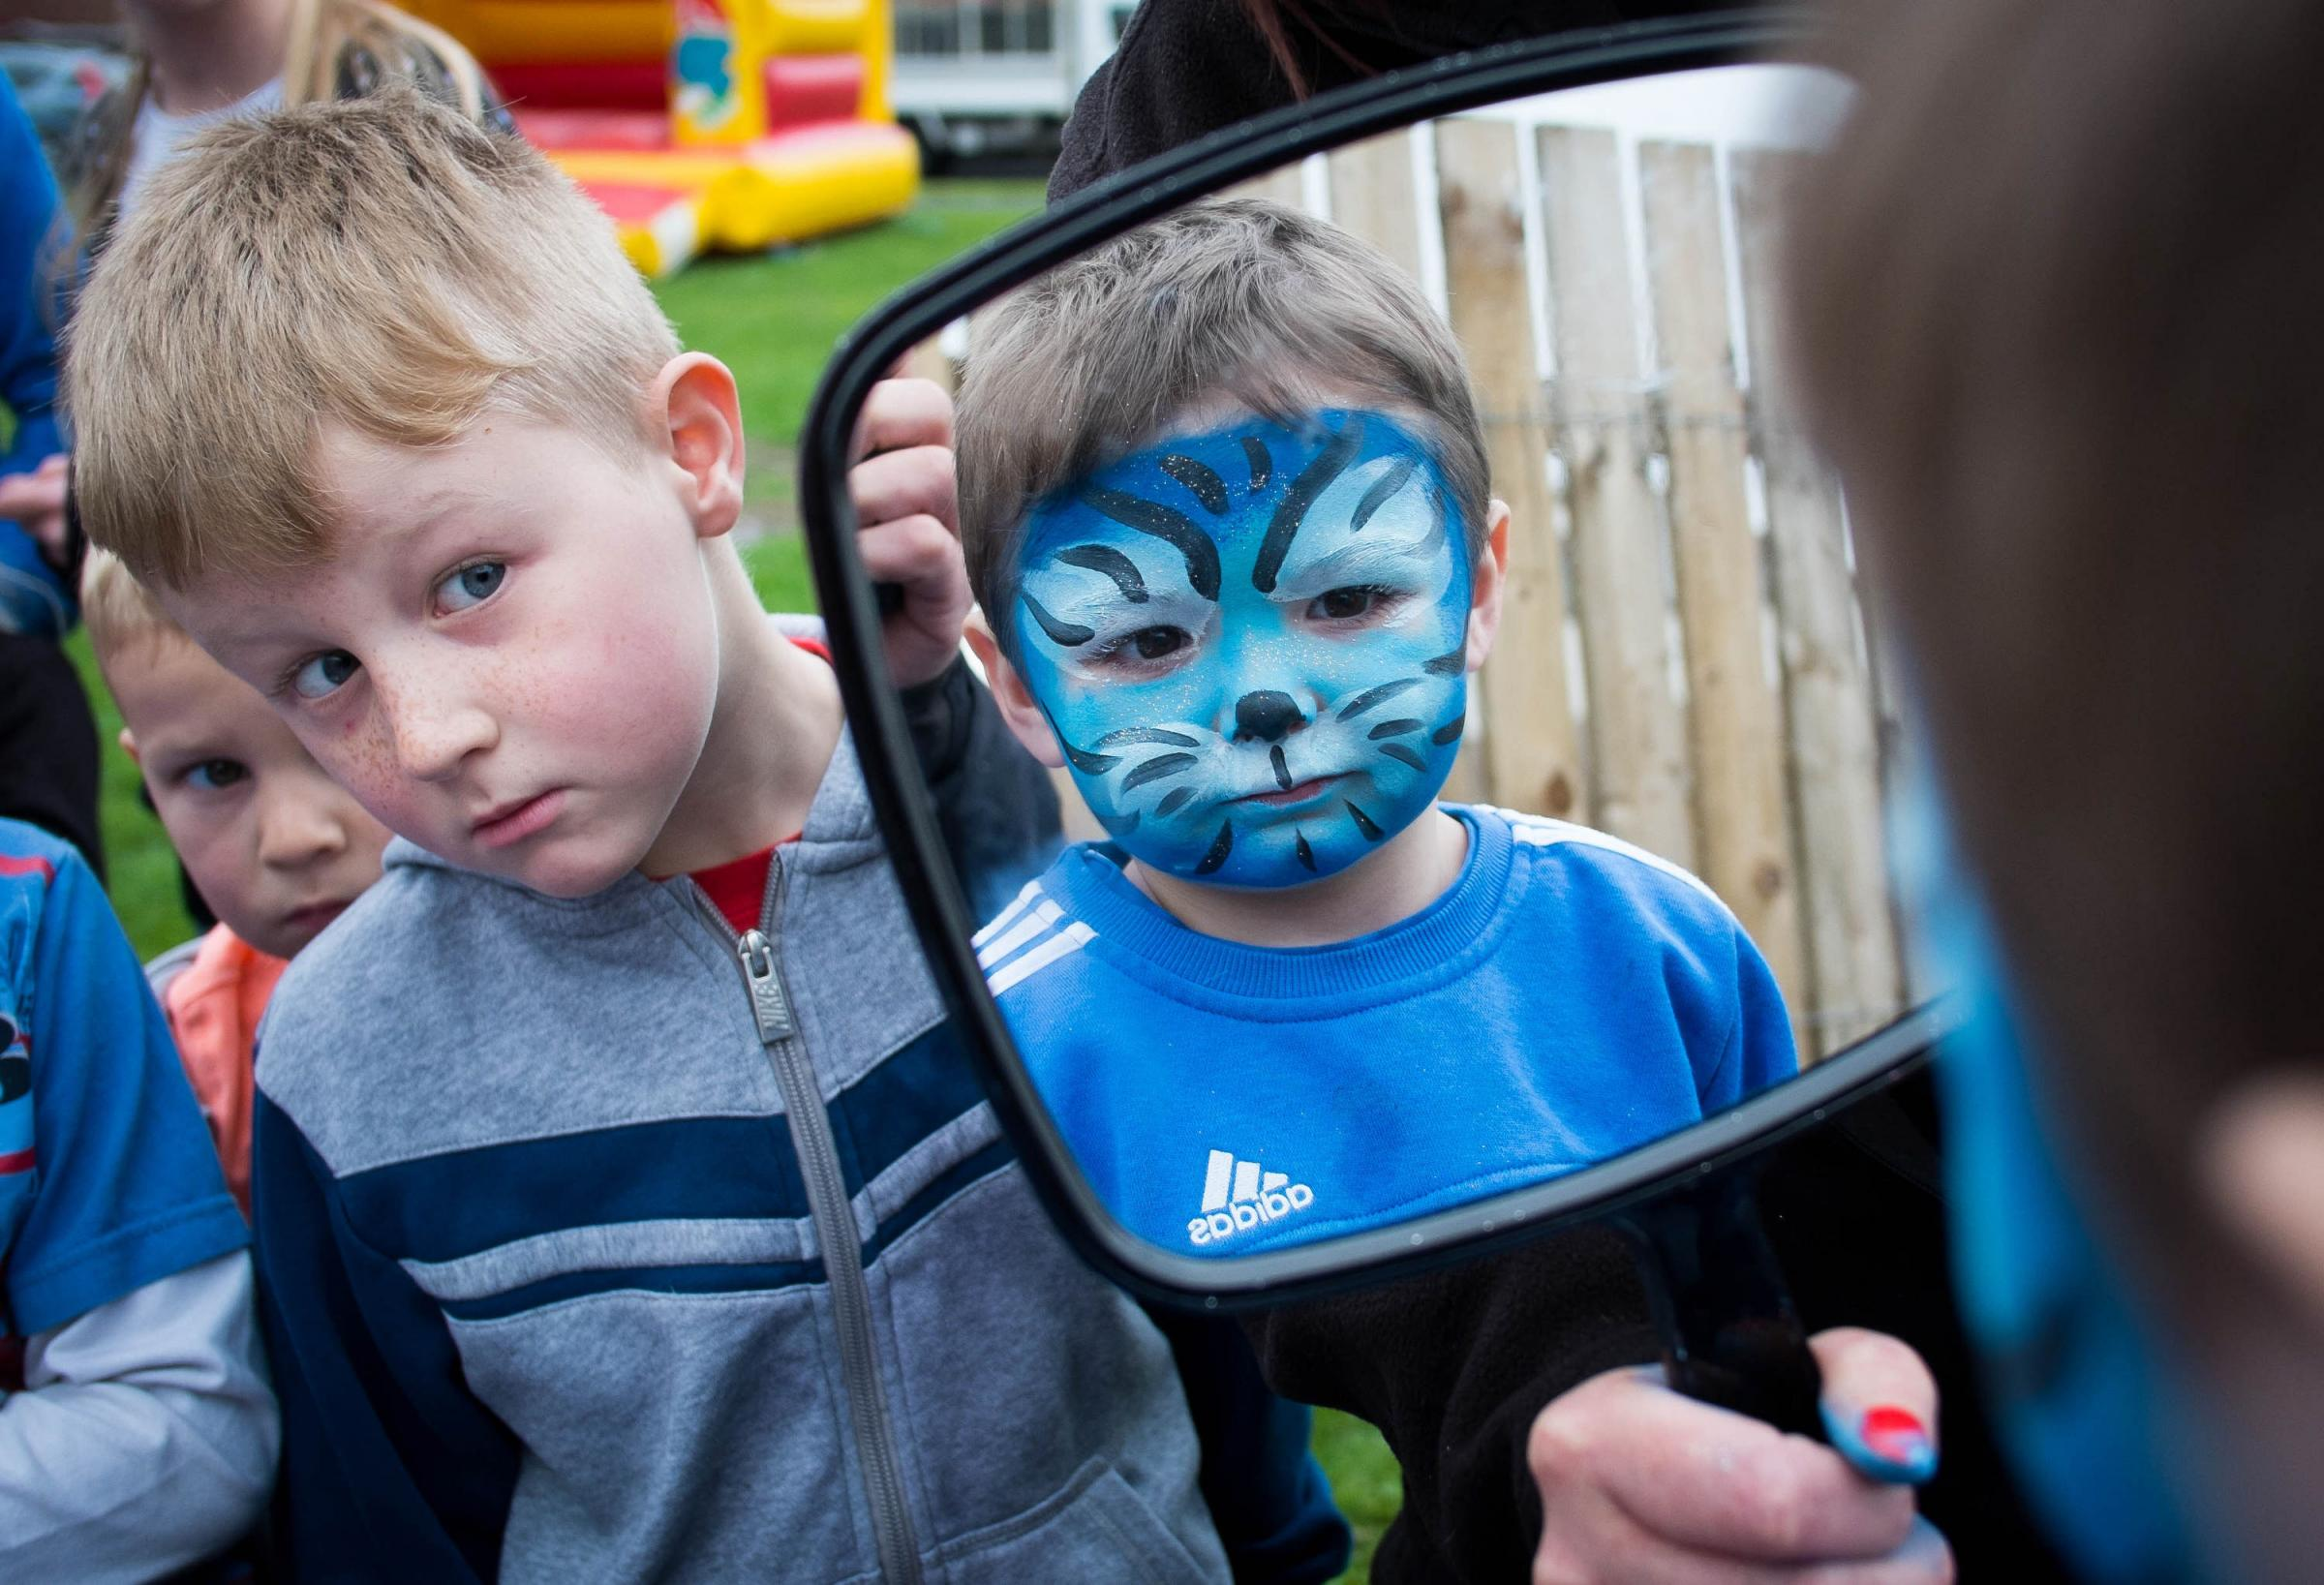 Mason Cameron, 3, from Middlesbrough takes a look in the mirror after having his face painted as his friends look on as they visit the launch of this year's Easter arson campaign by Cleveland Fire Brigade